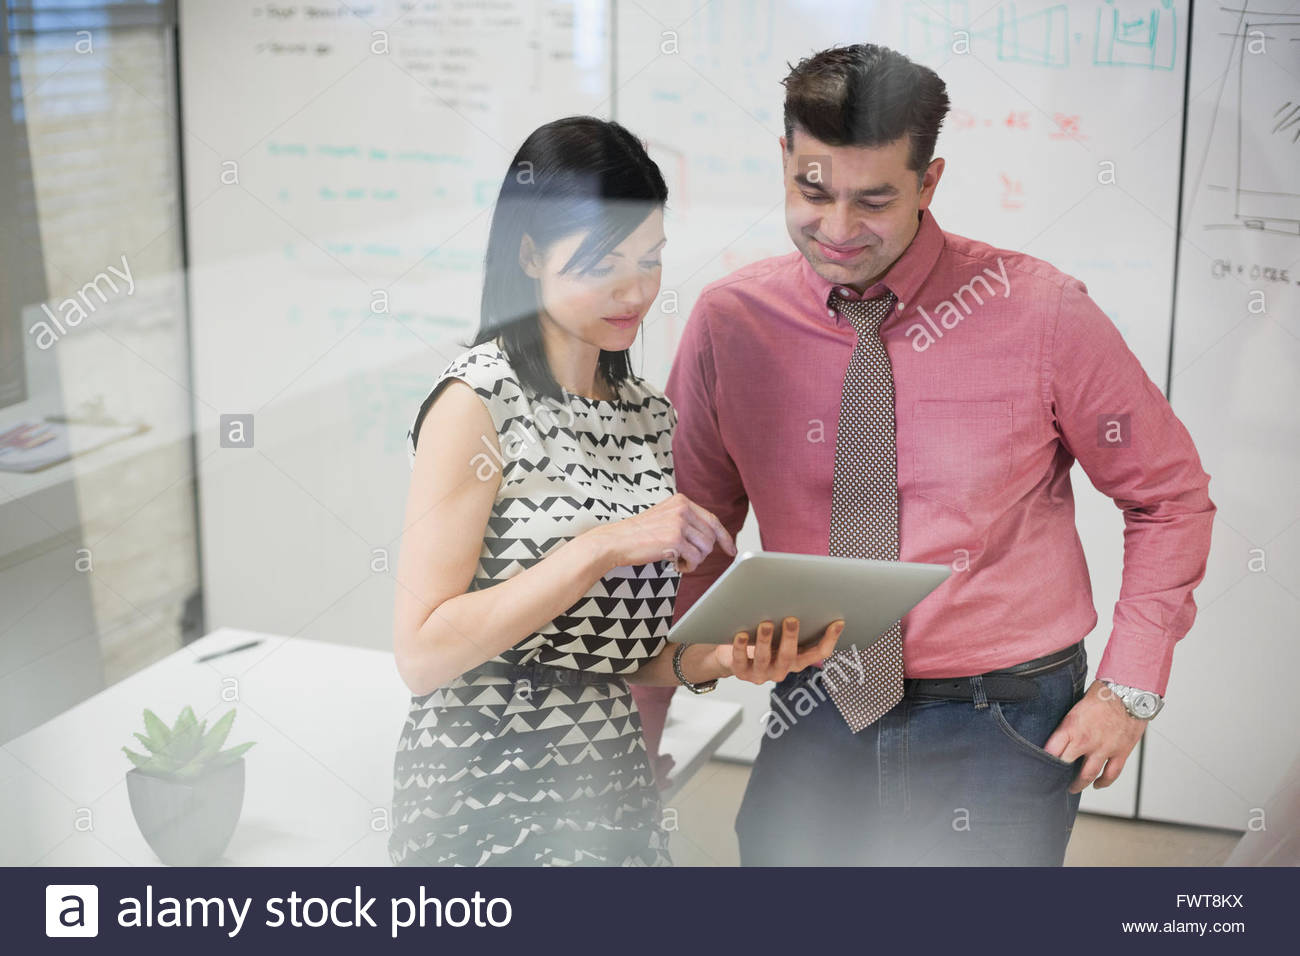 Coworkers sharing a digital tablet in meeting room - Stock Image